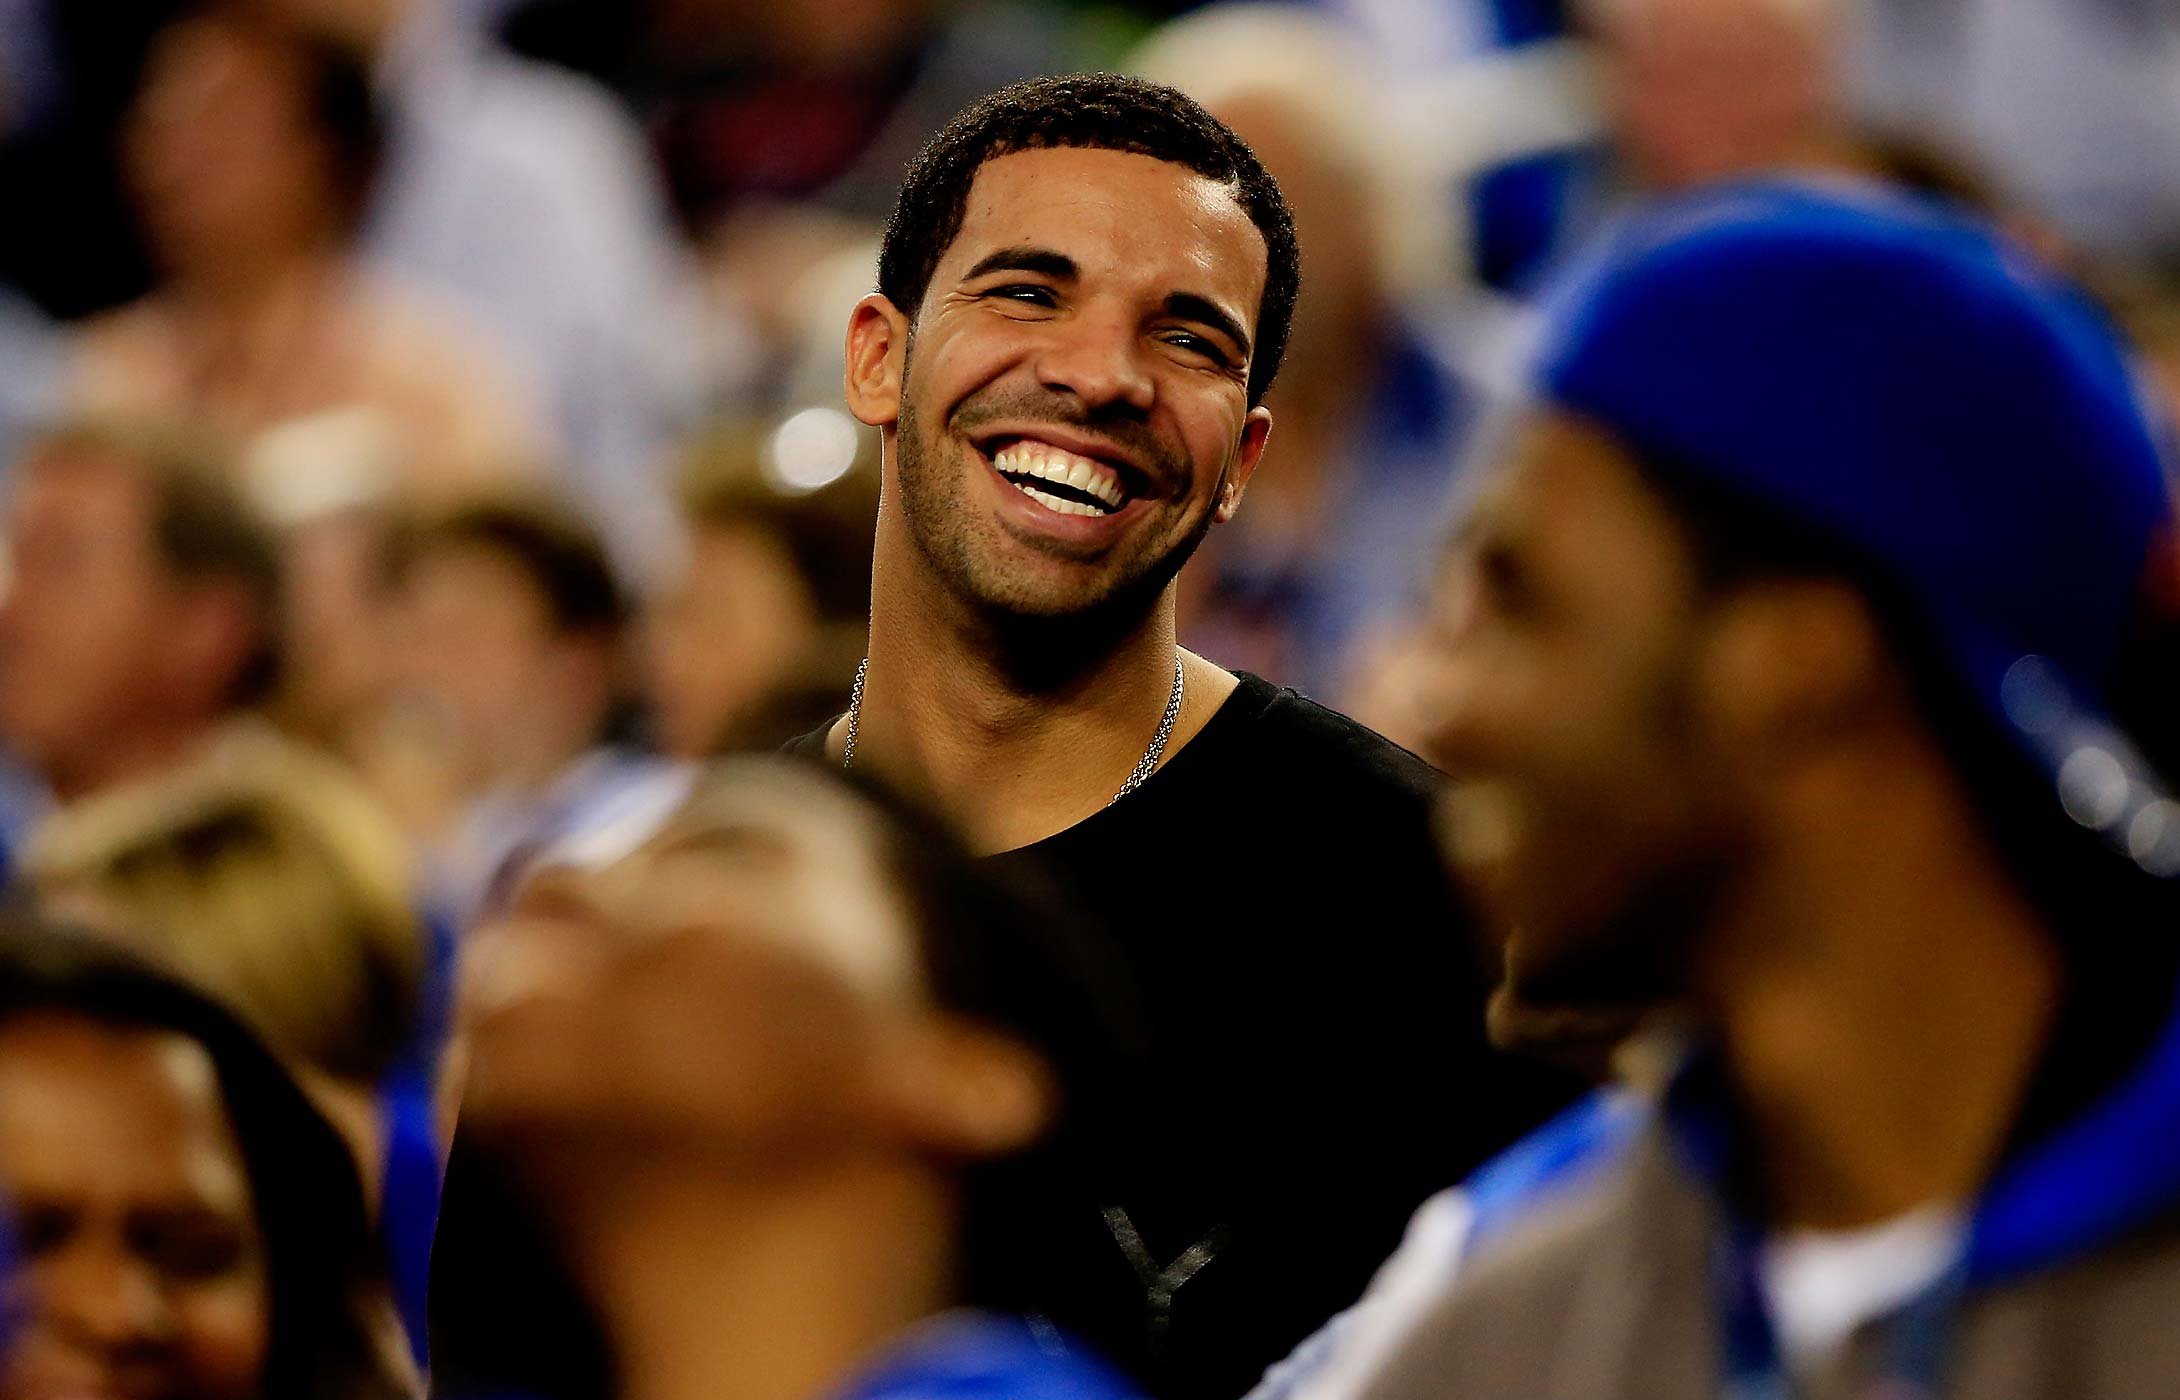 Drake attends the 2014 Final Four semifinal between the Kentucky Wildcats and the Wisconsin Badgers at AT&T Stadium in Arlington, Texas.